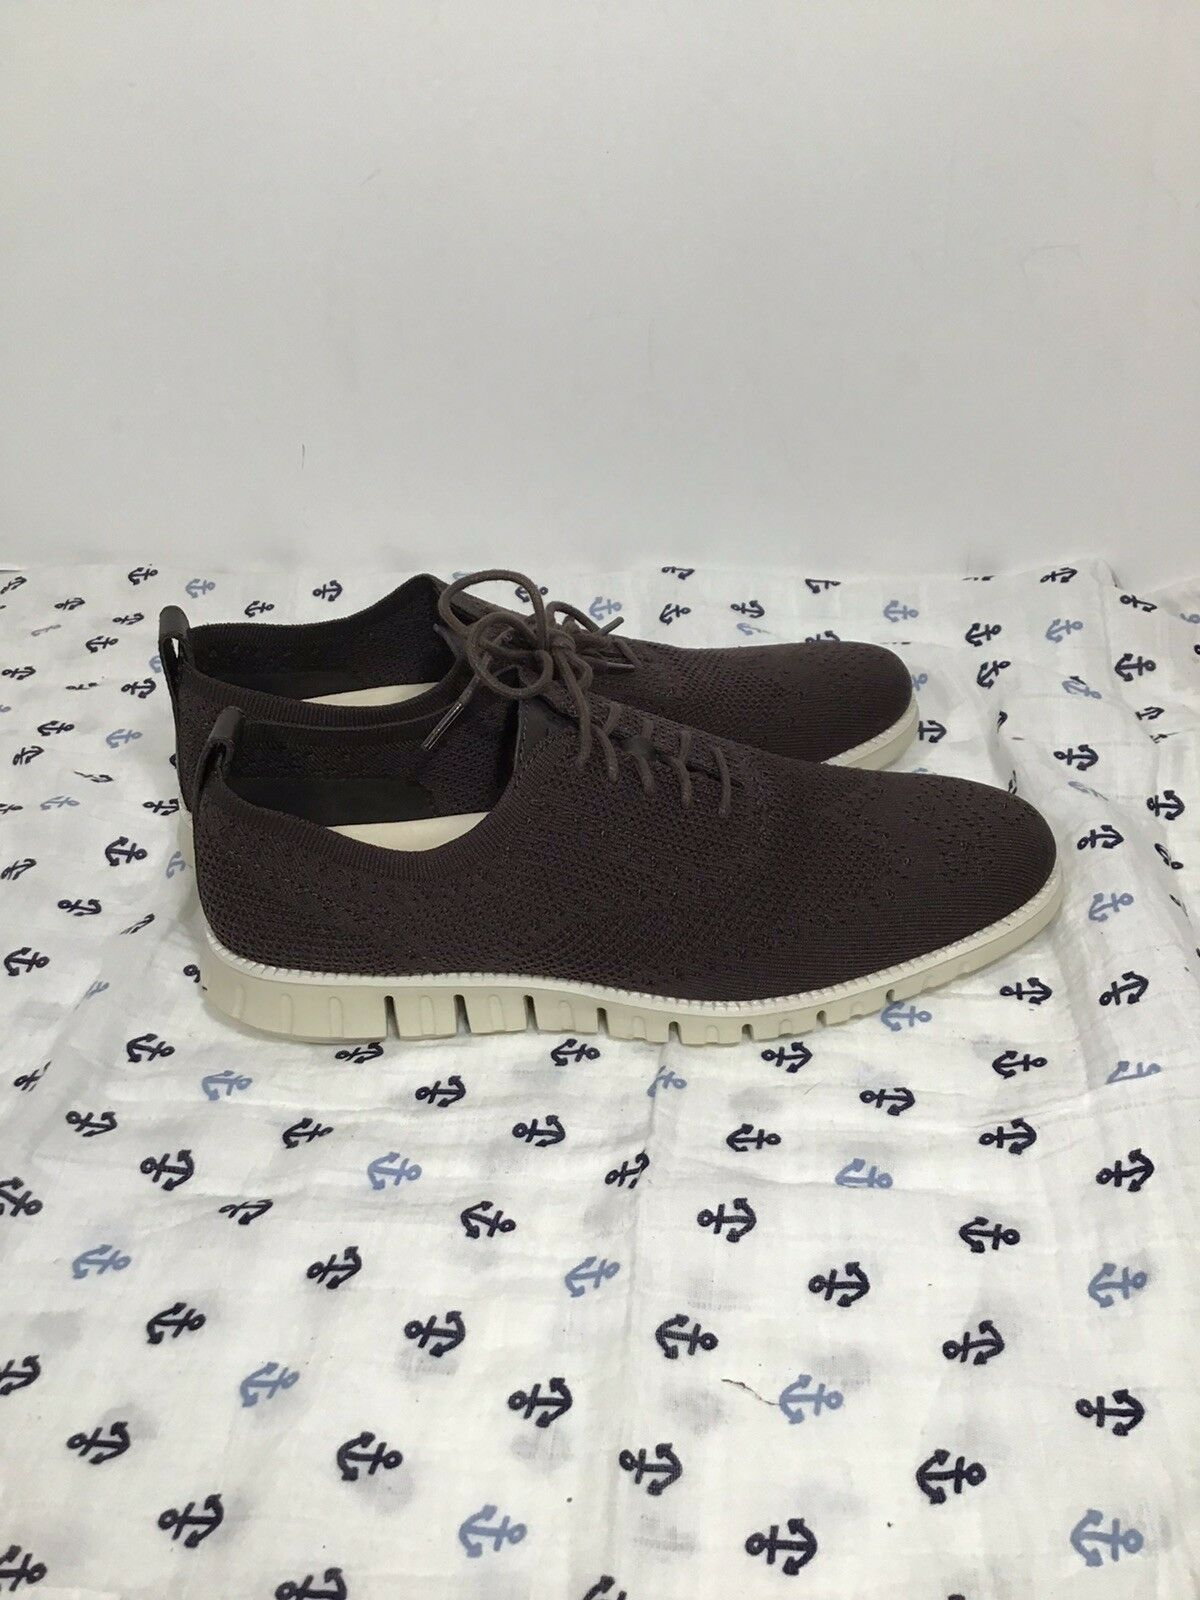 Cole Haan Zerogrand Stitchlite Oxford Brown Casual Men 11